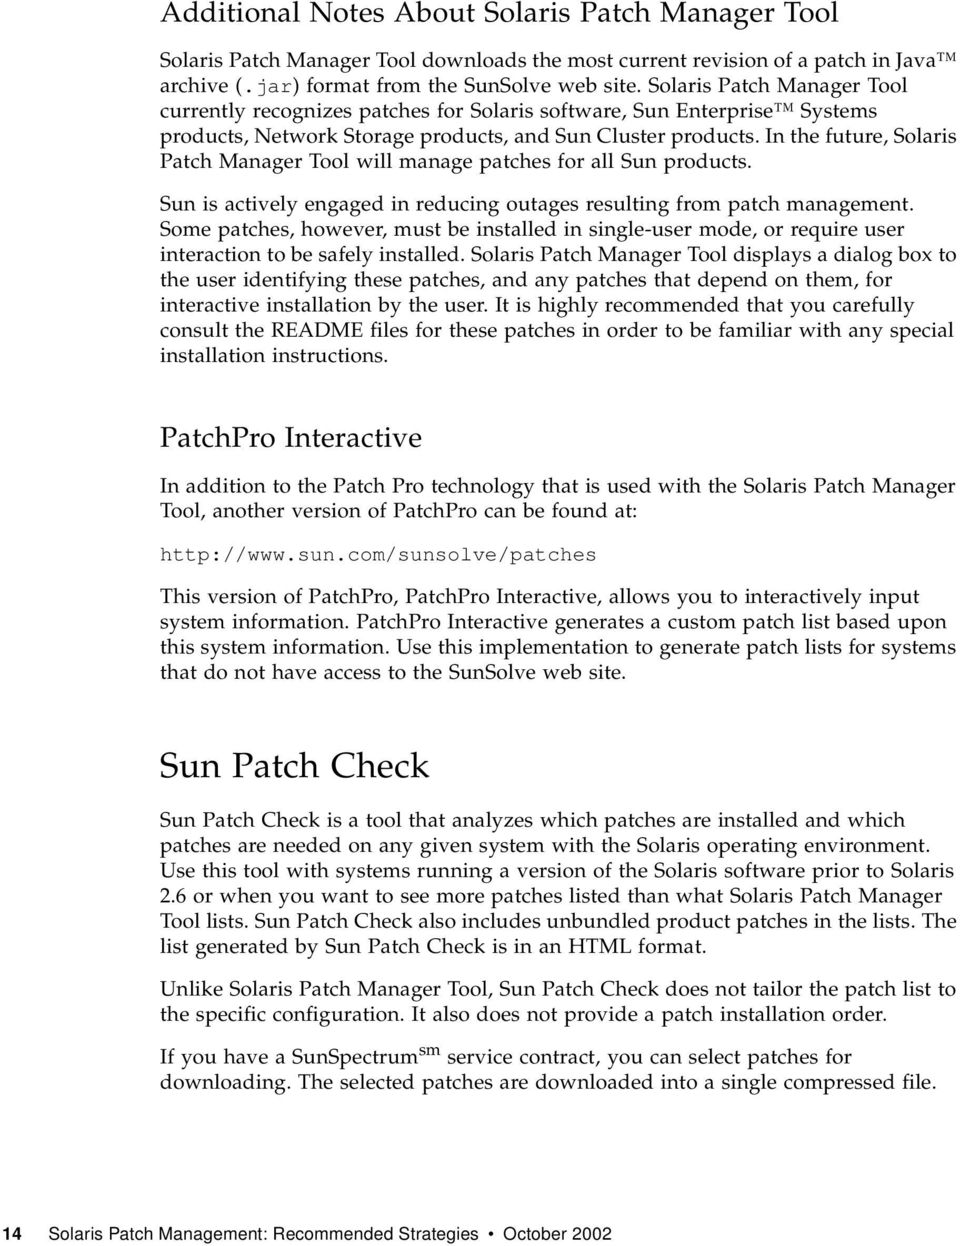 In the future, Solaris Patch Manager Tool will manage patches for all Sun products. Sun is actively engaged in reducing outages resulting from patch management.